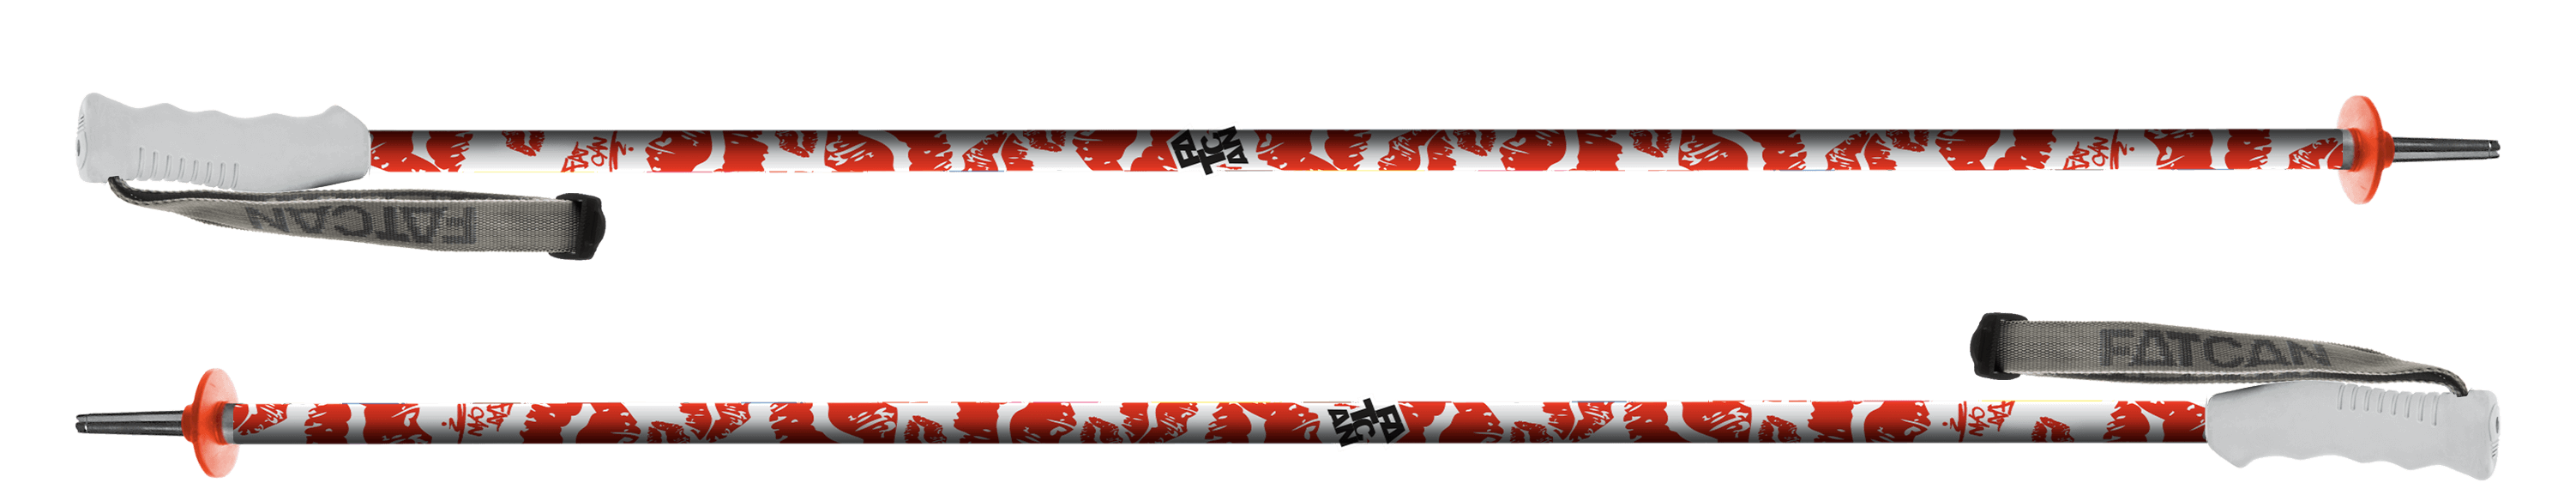 Kiss Red 18 - Fatcan ski Poles made in Italy